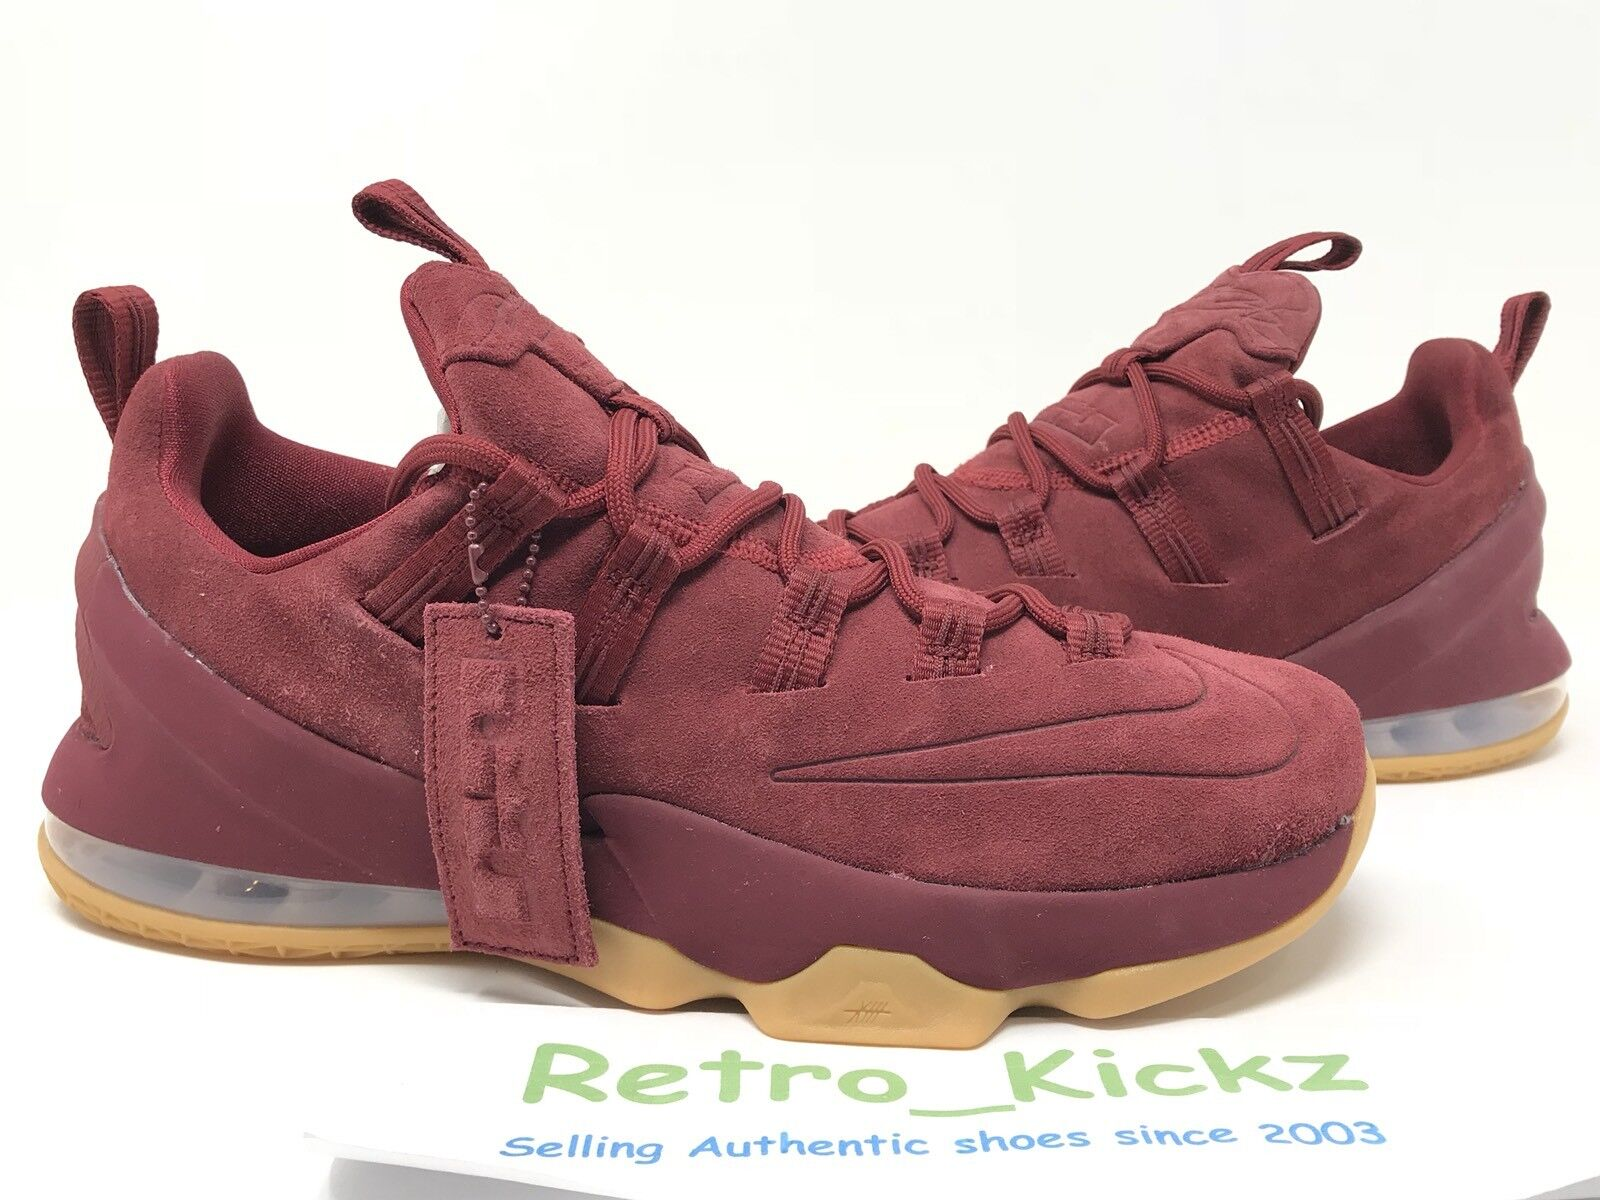 Seasonal clearance sale AH8289 600 NIKE LEBRON XIII 13 LOW PREMIUM BURGANDY RED GUM BASKETBALL 8 MENS